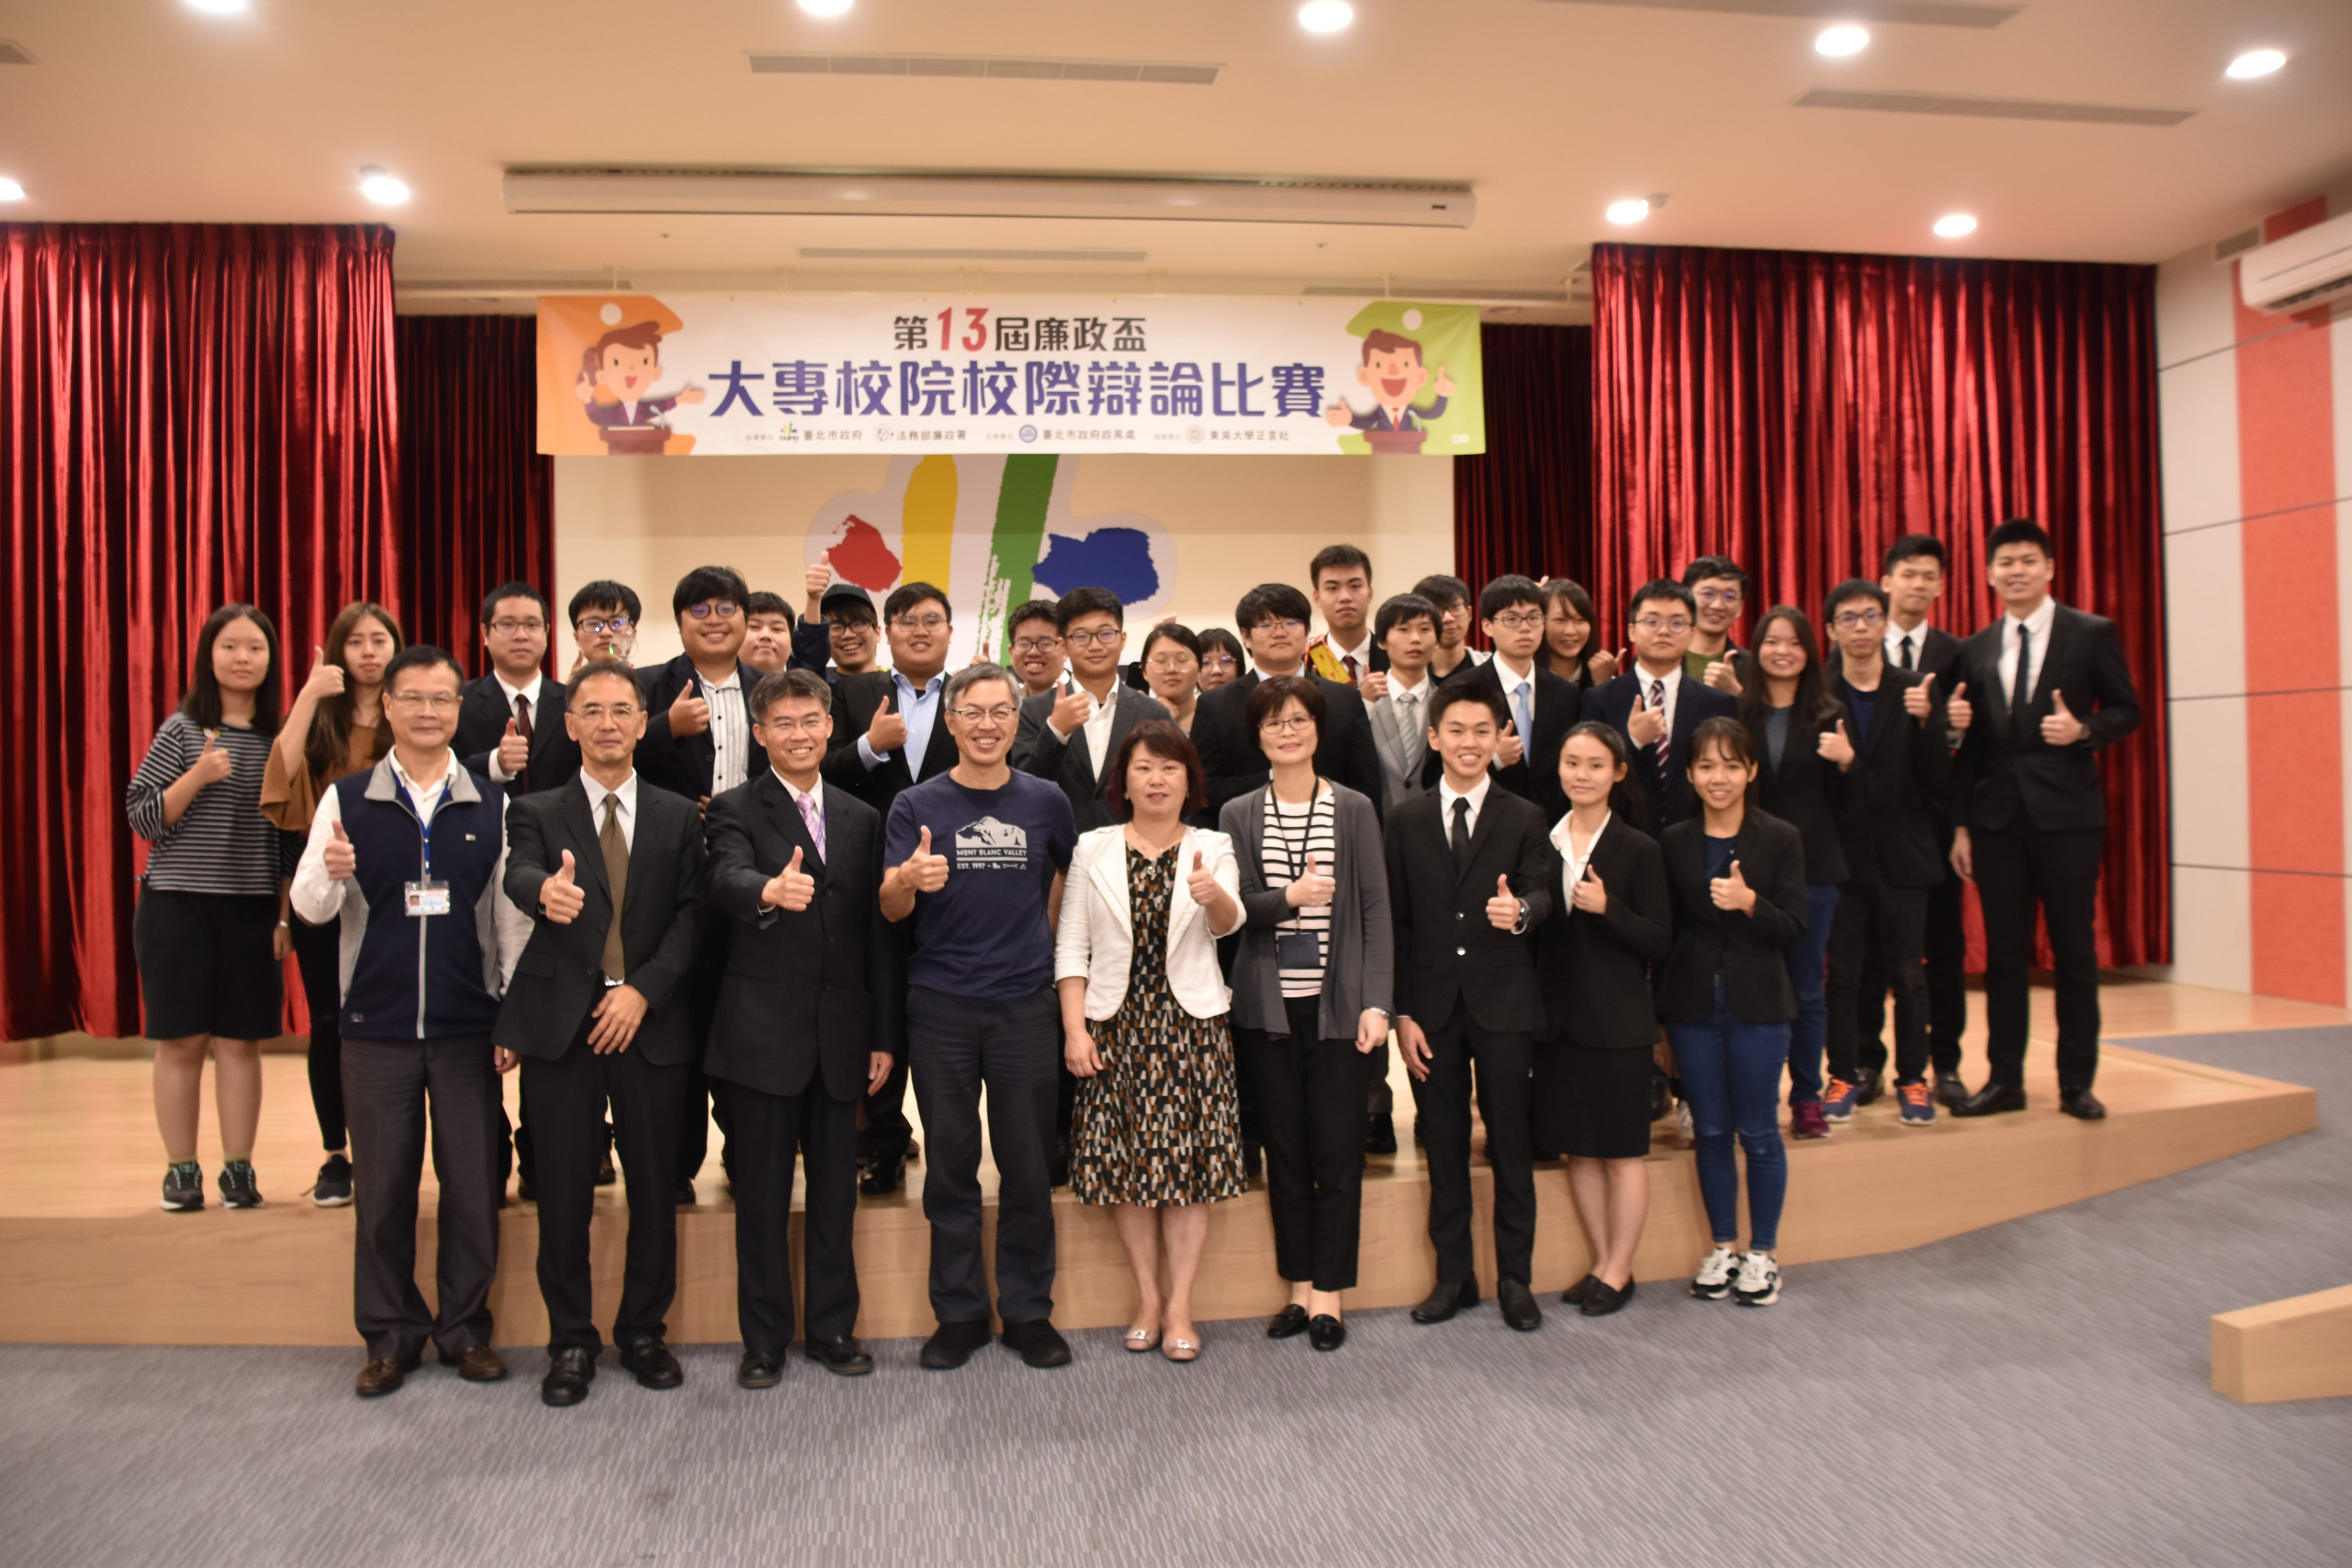 Participants of the Agency Against Corruption Cup Debate Competition